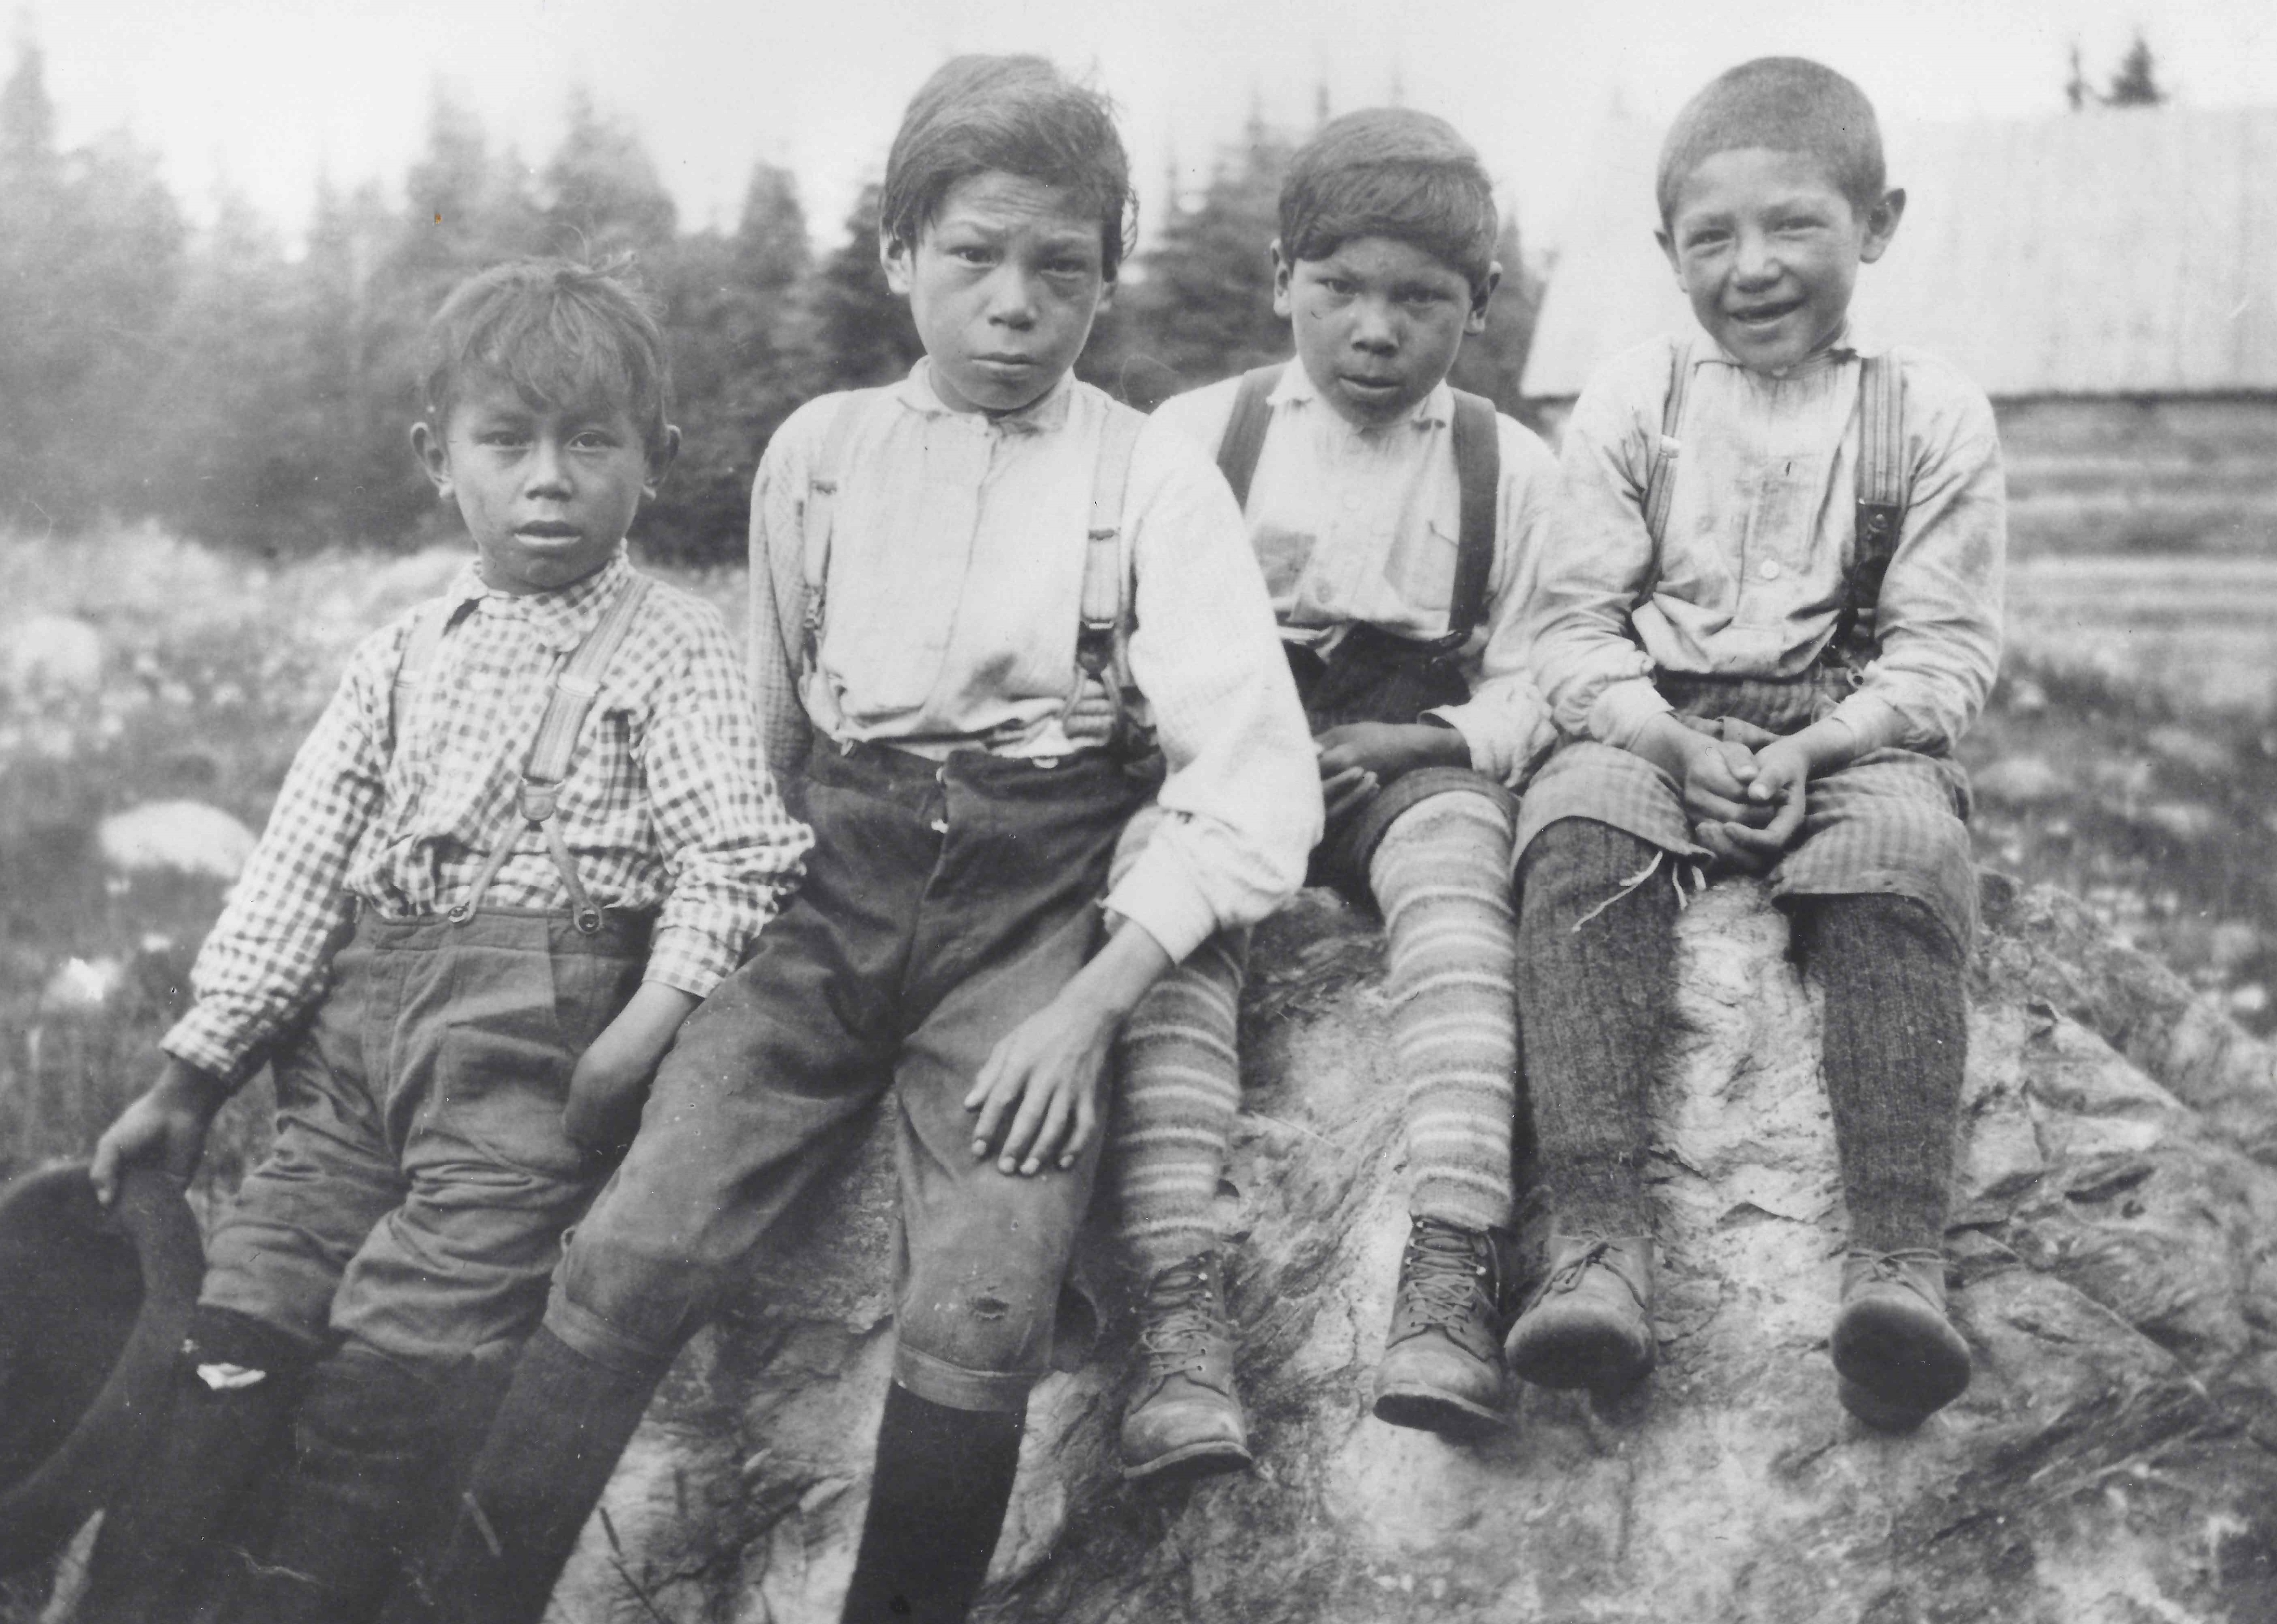 Boys — Timiskaming or Temagami circa 1913. (Frank Speck/American Philosophical Society)